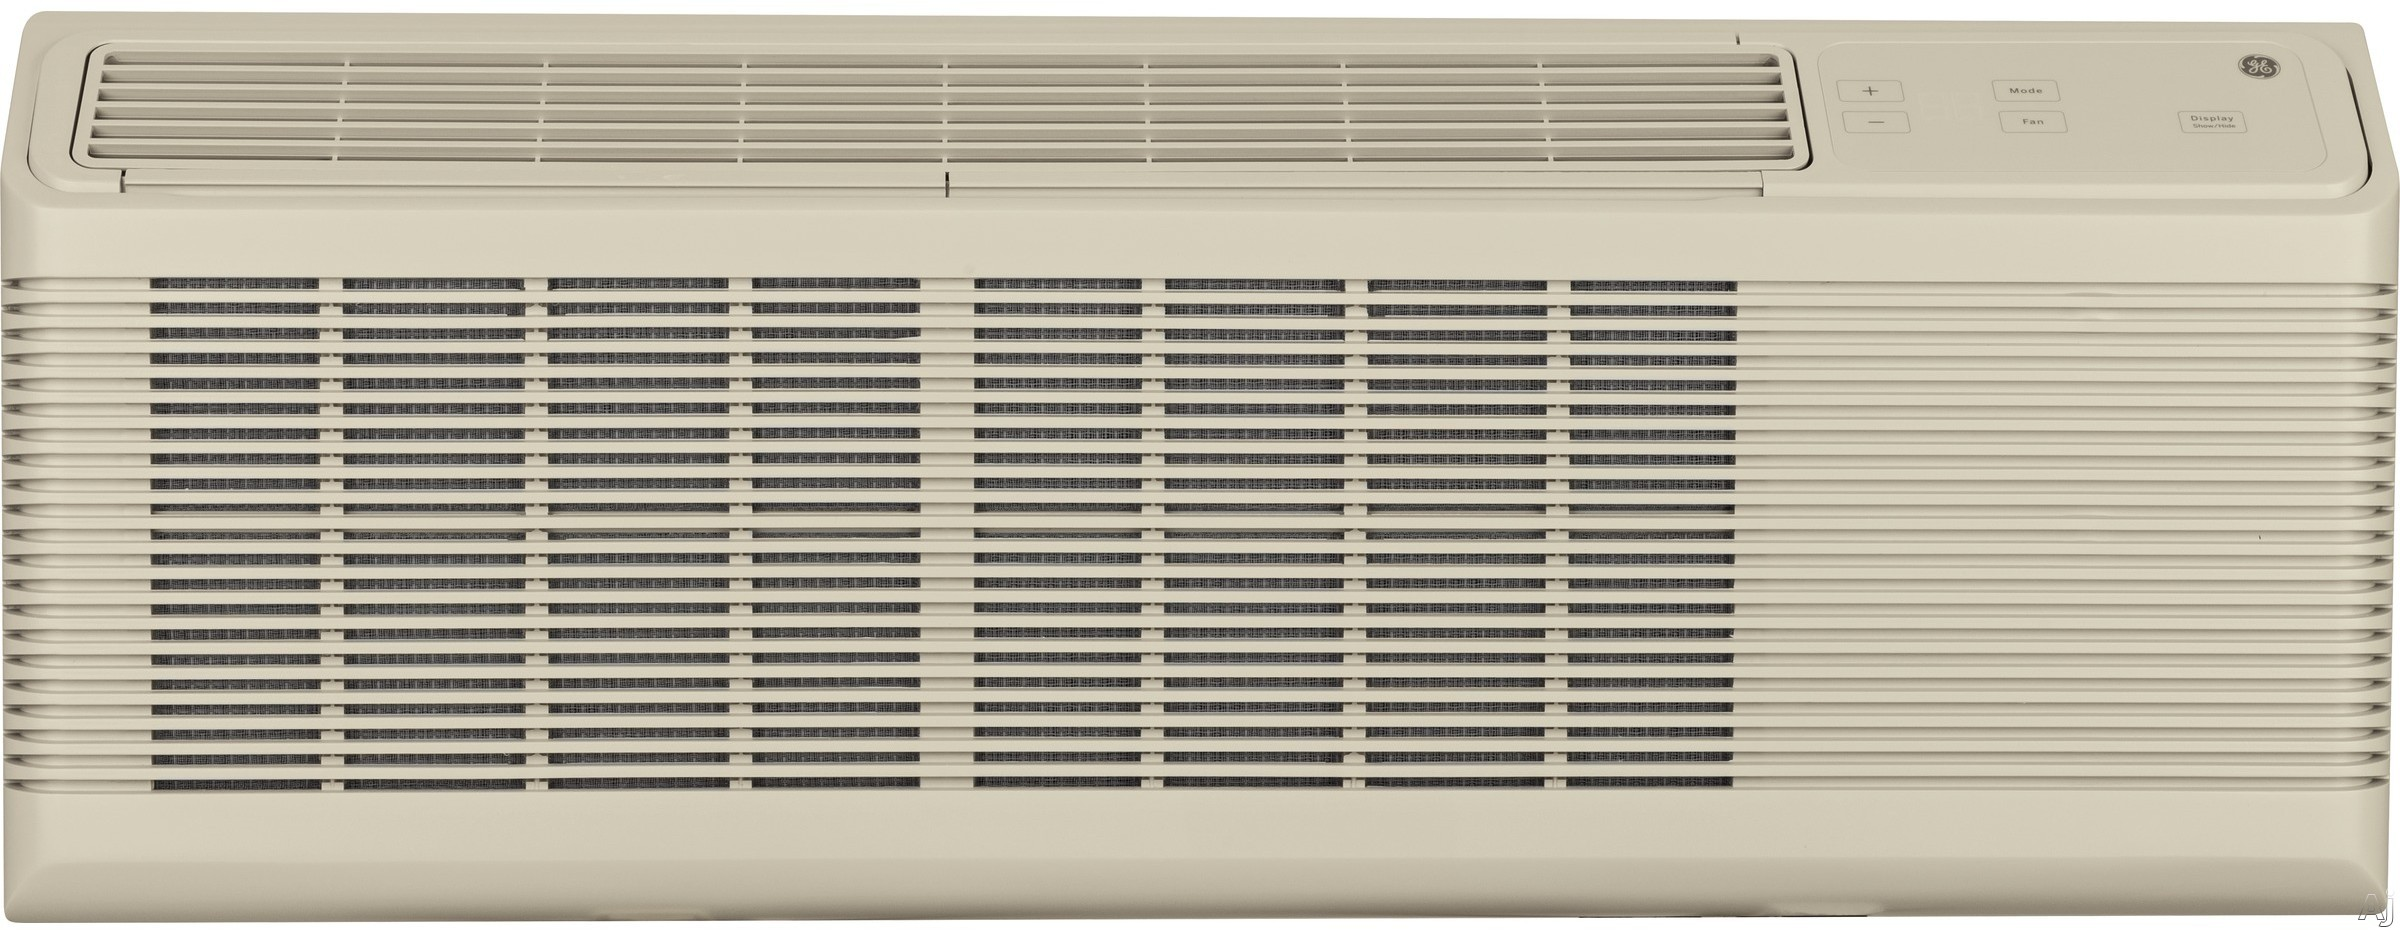 GE Zoneline 7,000 BTU 12.8 EER 265V Wall Air Conditioner - AZ65H07EAC